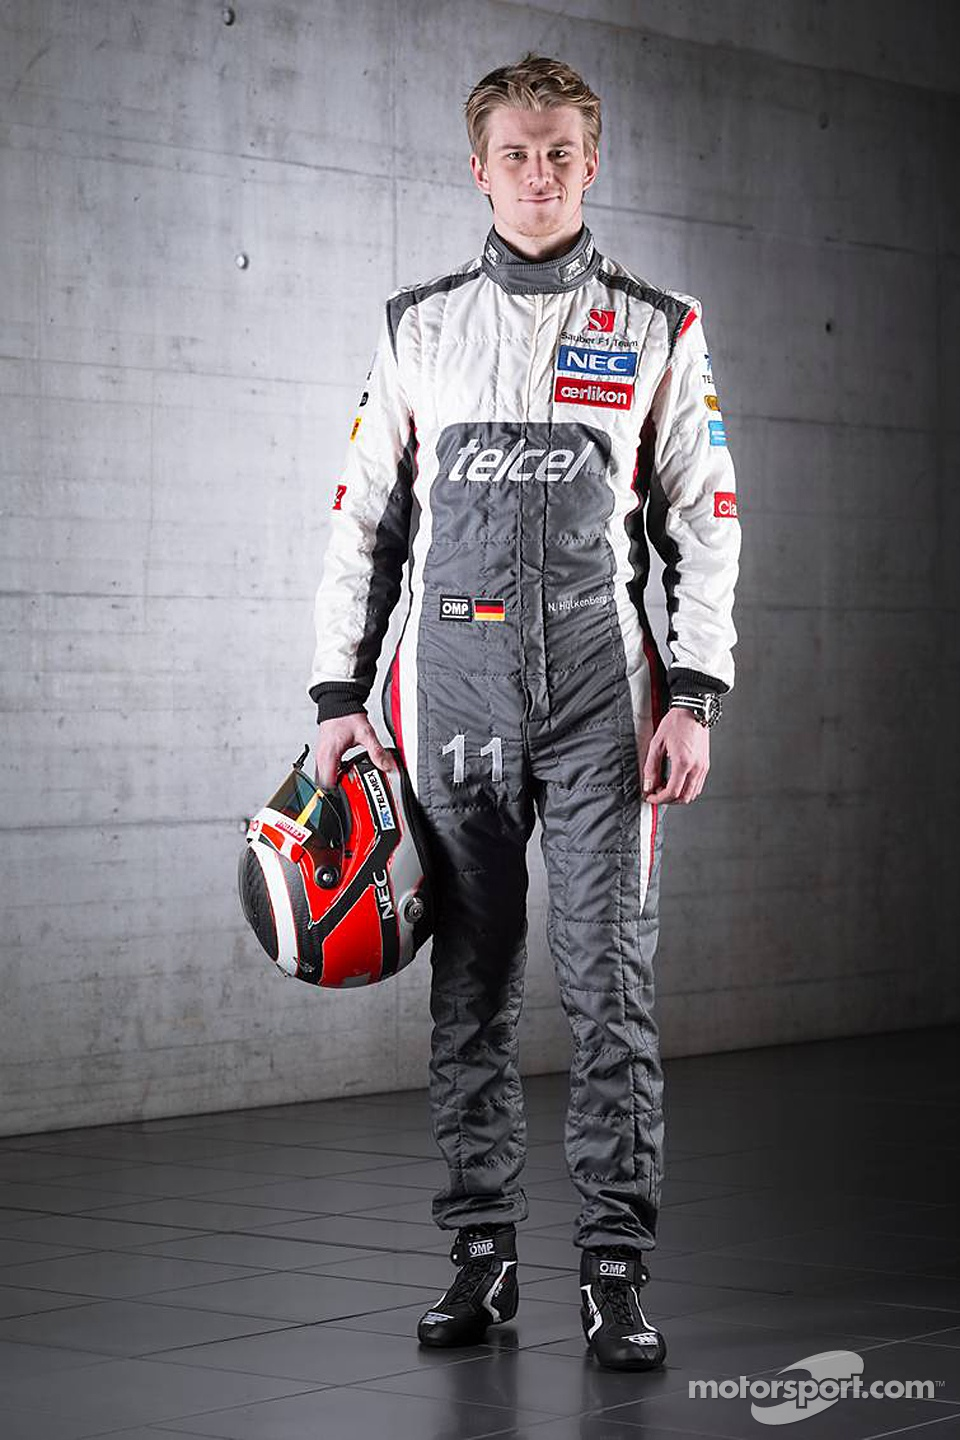 Nico Hulkenberg, Sauber F1 Team